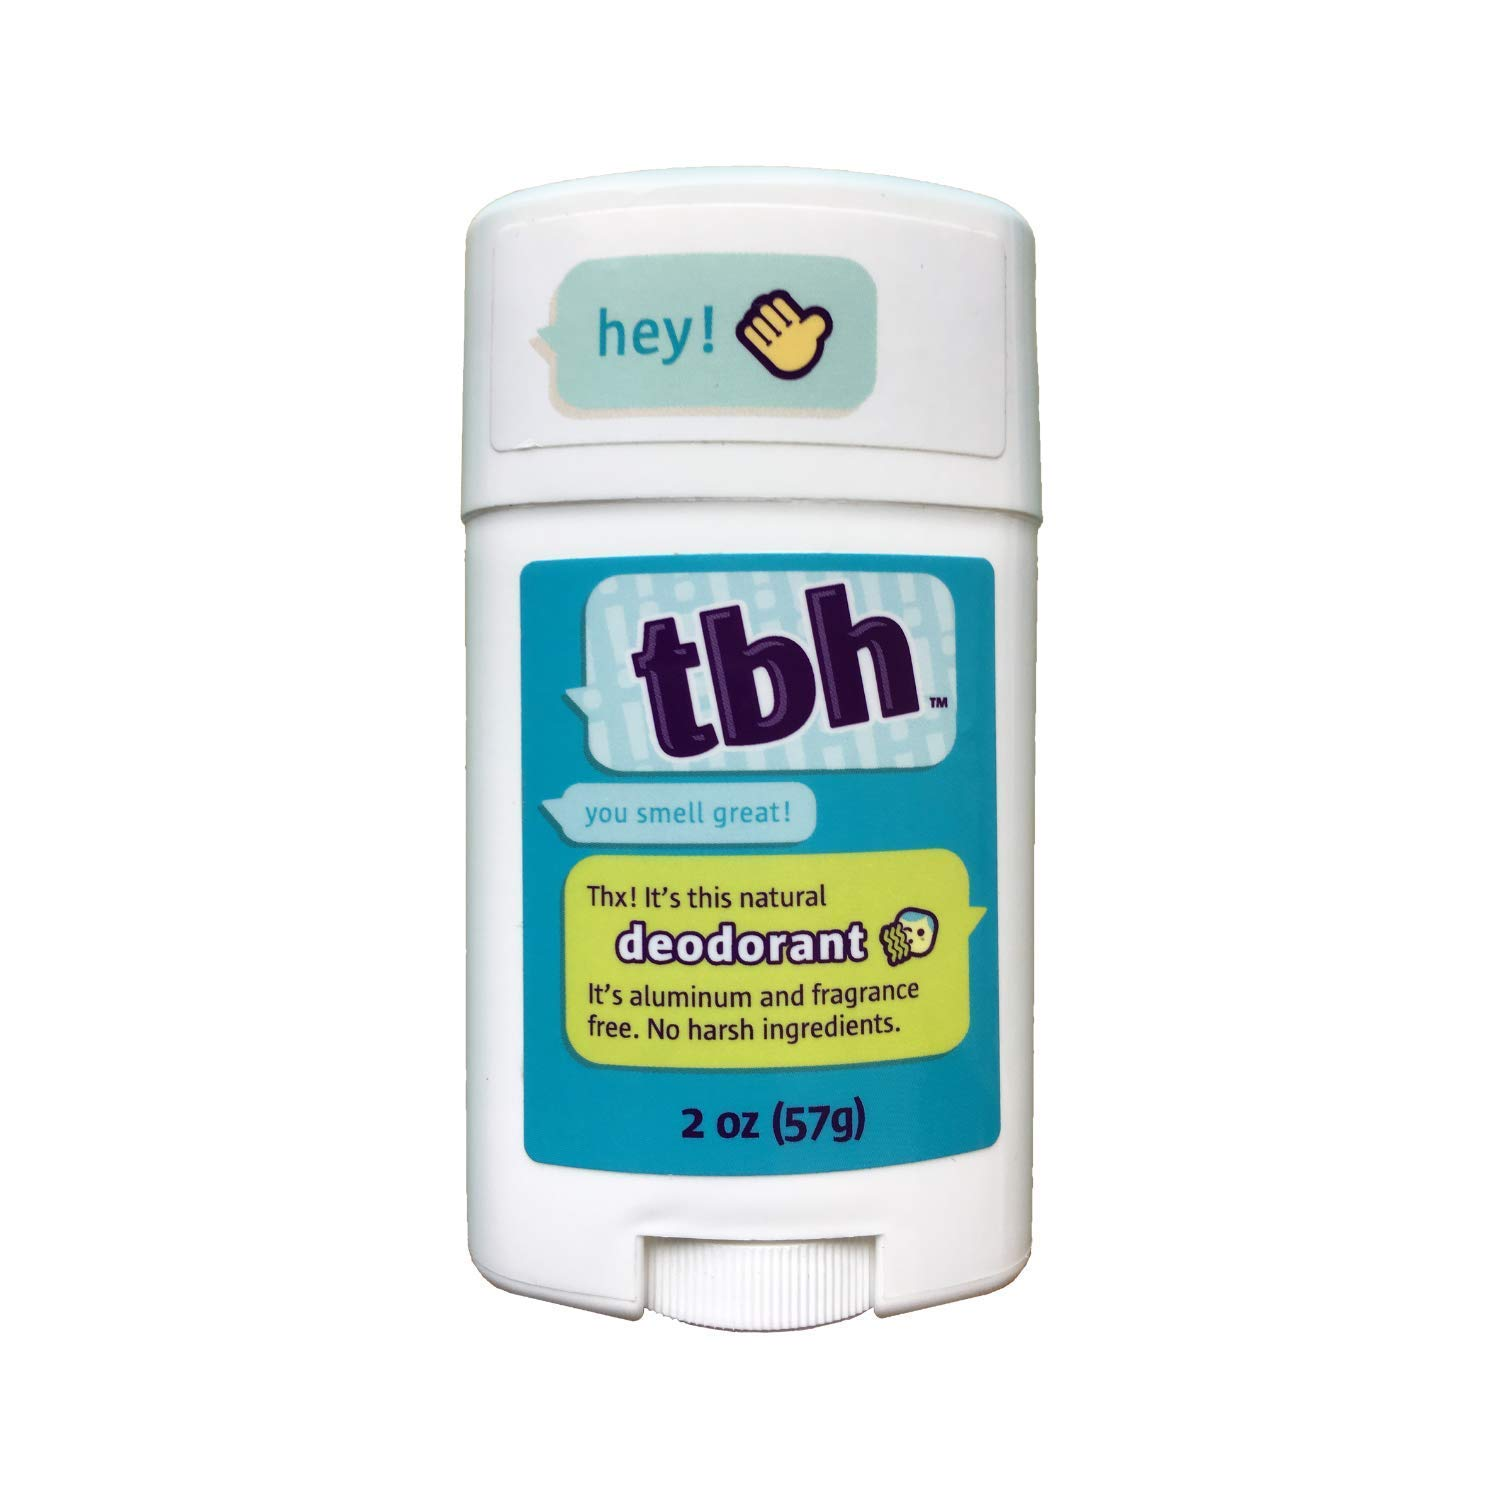 TBH Kids Deodorant - Unscented Deodorant for Kids - Made w/ Natural Ingredients in the USA - Aluminum Free Deodorant - Kids Deodorant Girls and Boys